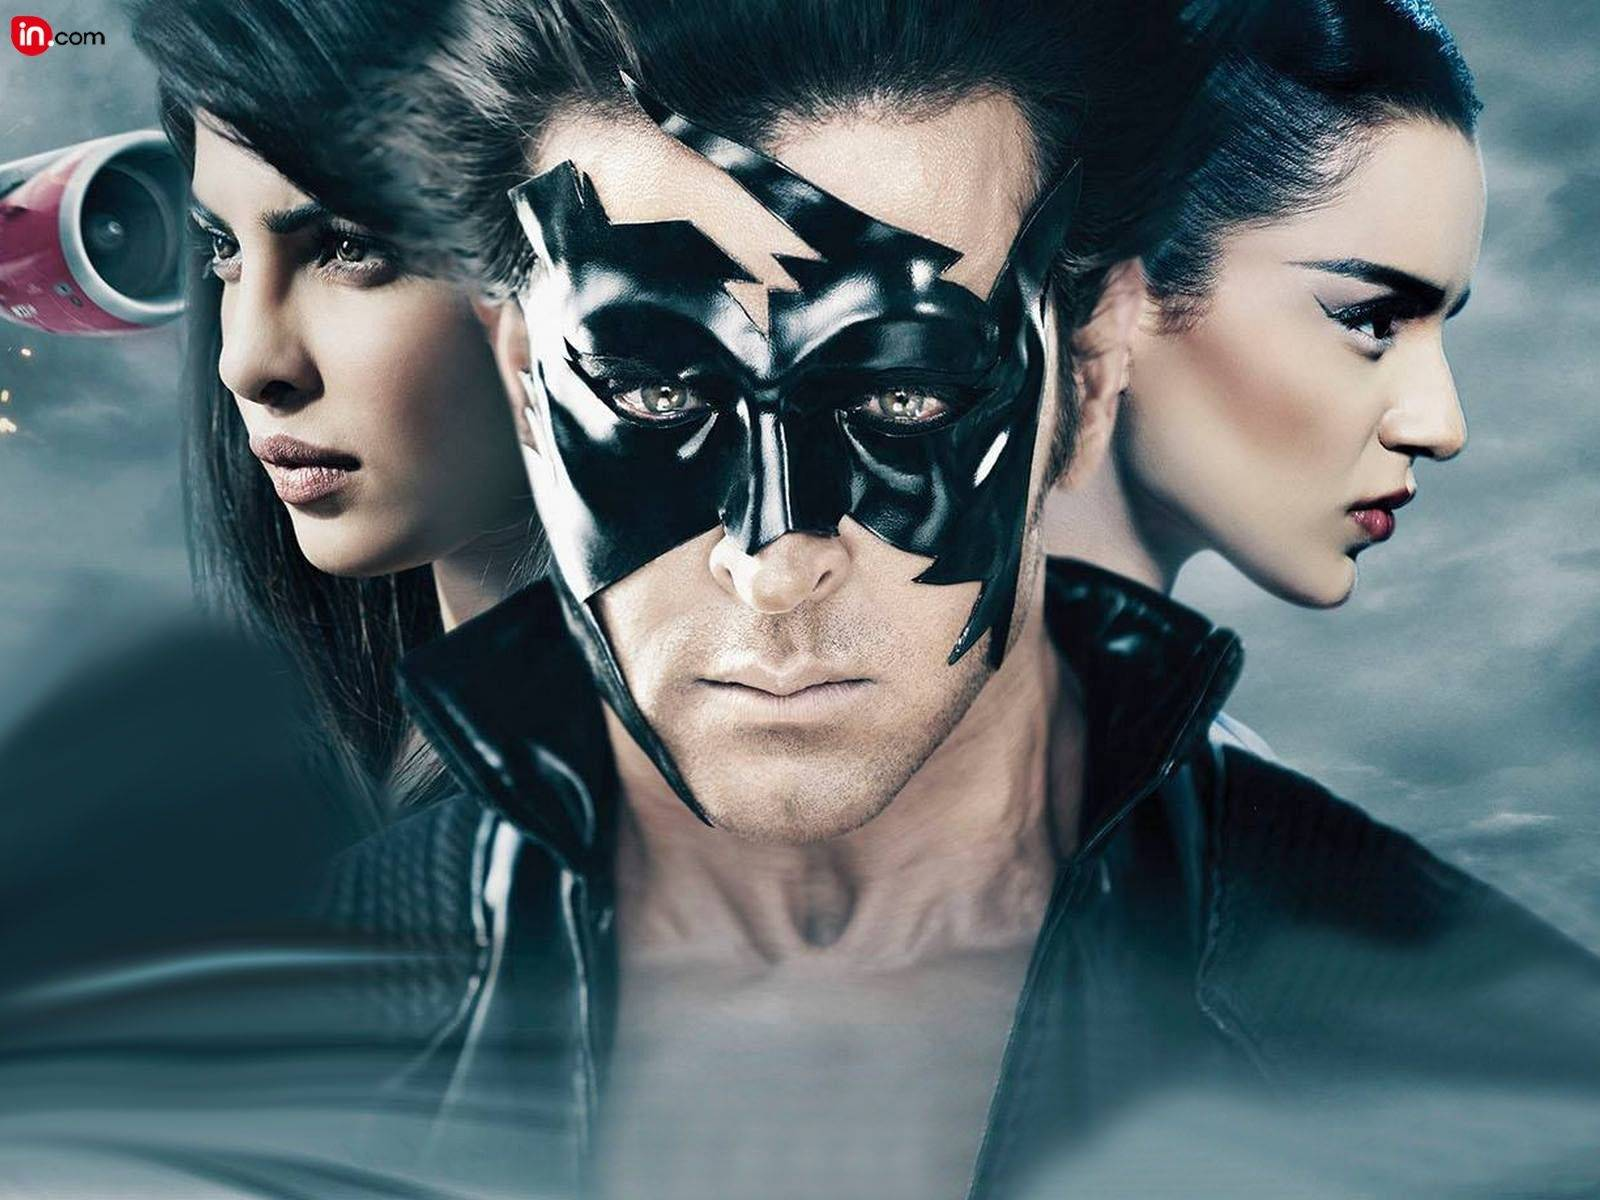 Best 44+ Krrish 3 Wallpapers on HipWallpapers